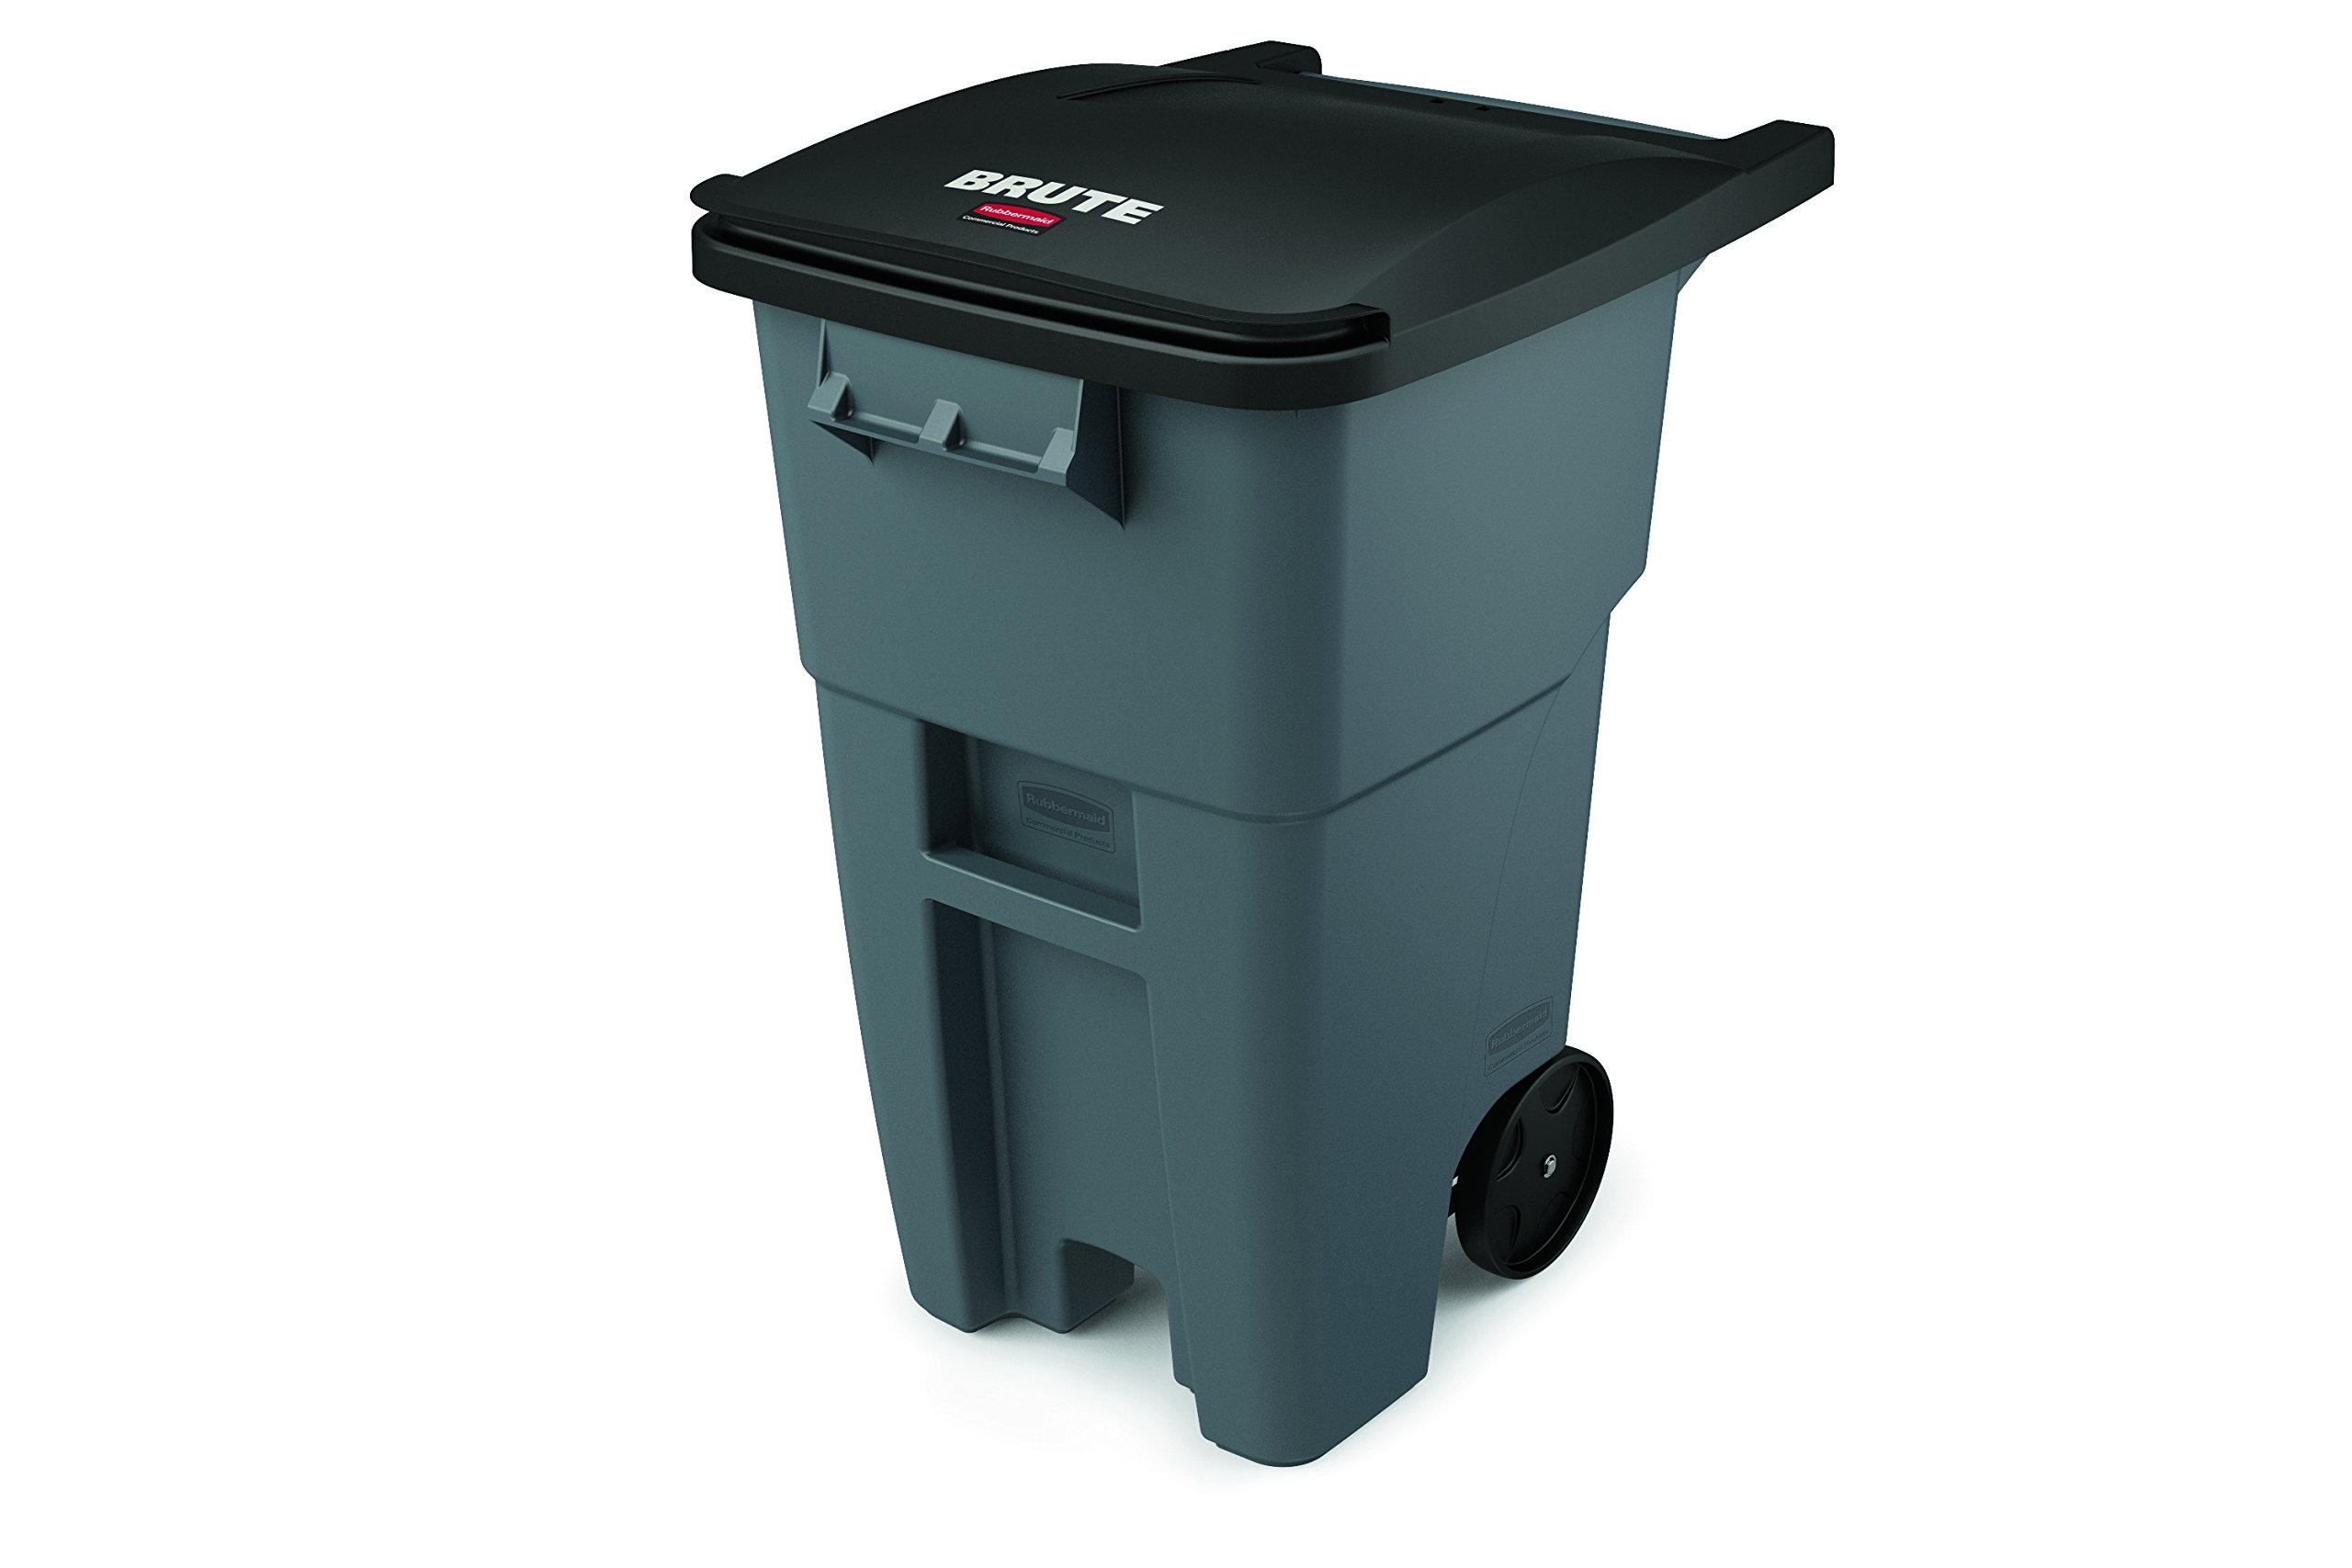 Rubbermaid Commercial Products BRUTE Heavy-Duty Rollout Waste/Utility Container, 50-gallon, Gray (FG9W2700GRAY)